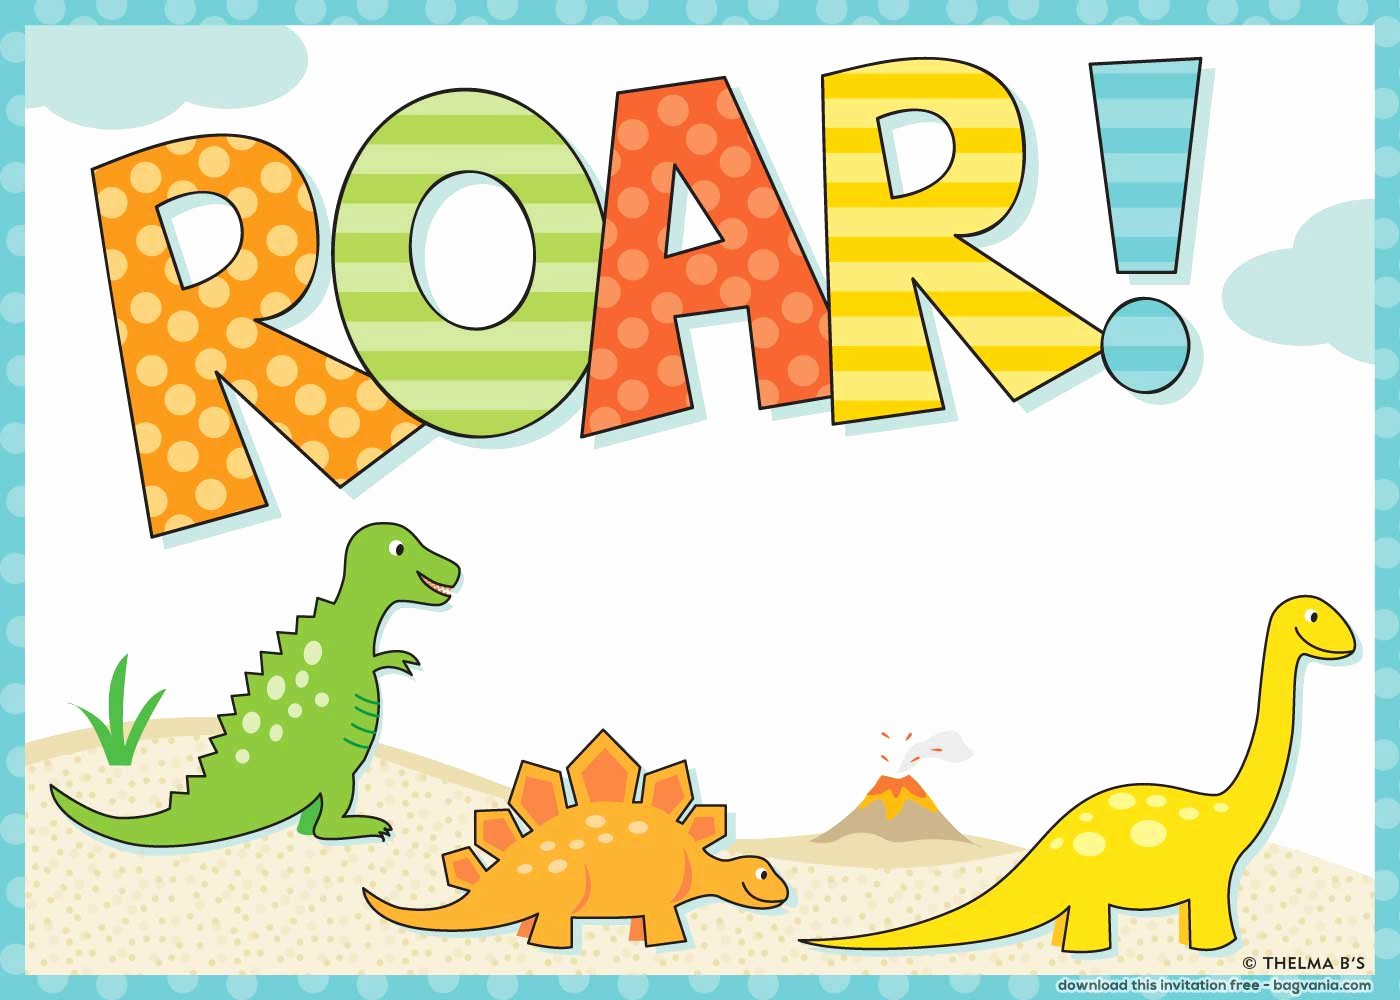 Dinosaur Birthday Invitation Template Lovely Free Dinosaur Birthday Invitations – Bagvania Free